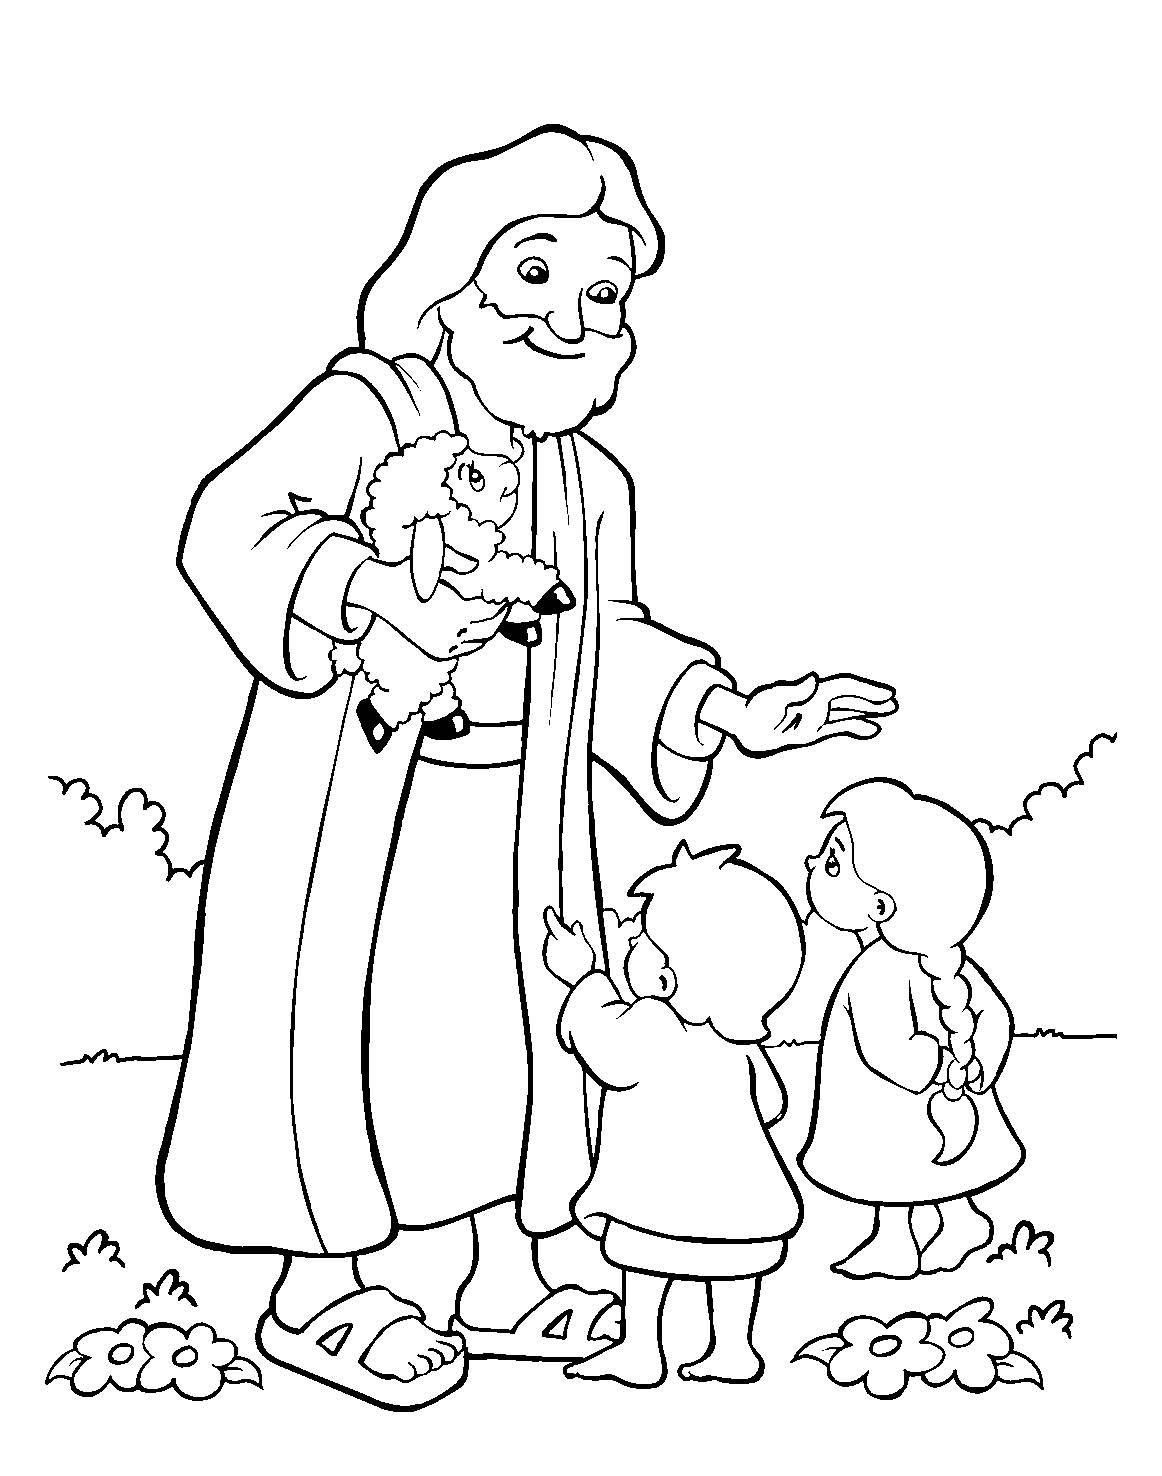 Best Sunday School Lessons Coloring Pages Inspirational Image for Download Of Prayer Trust In the Lord Collection